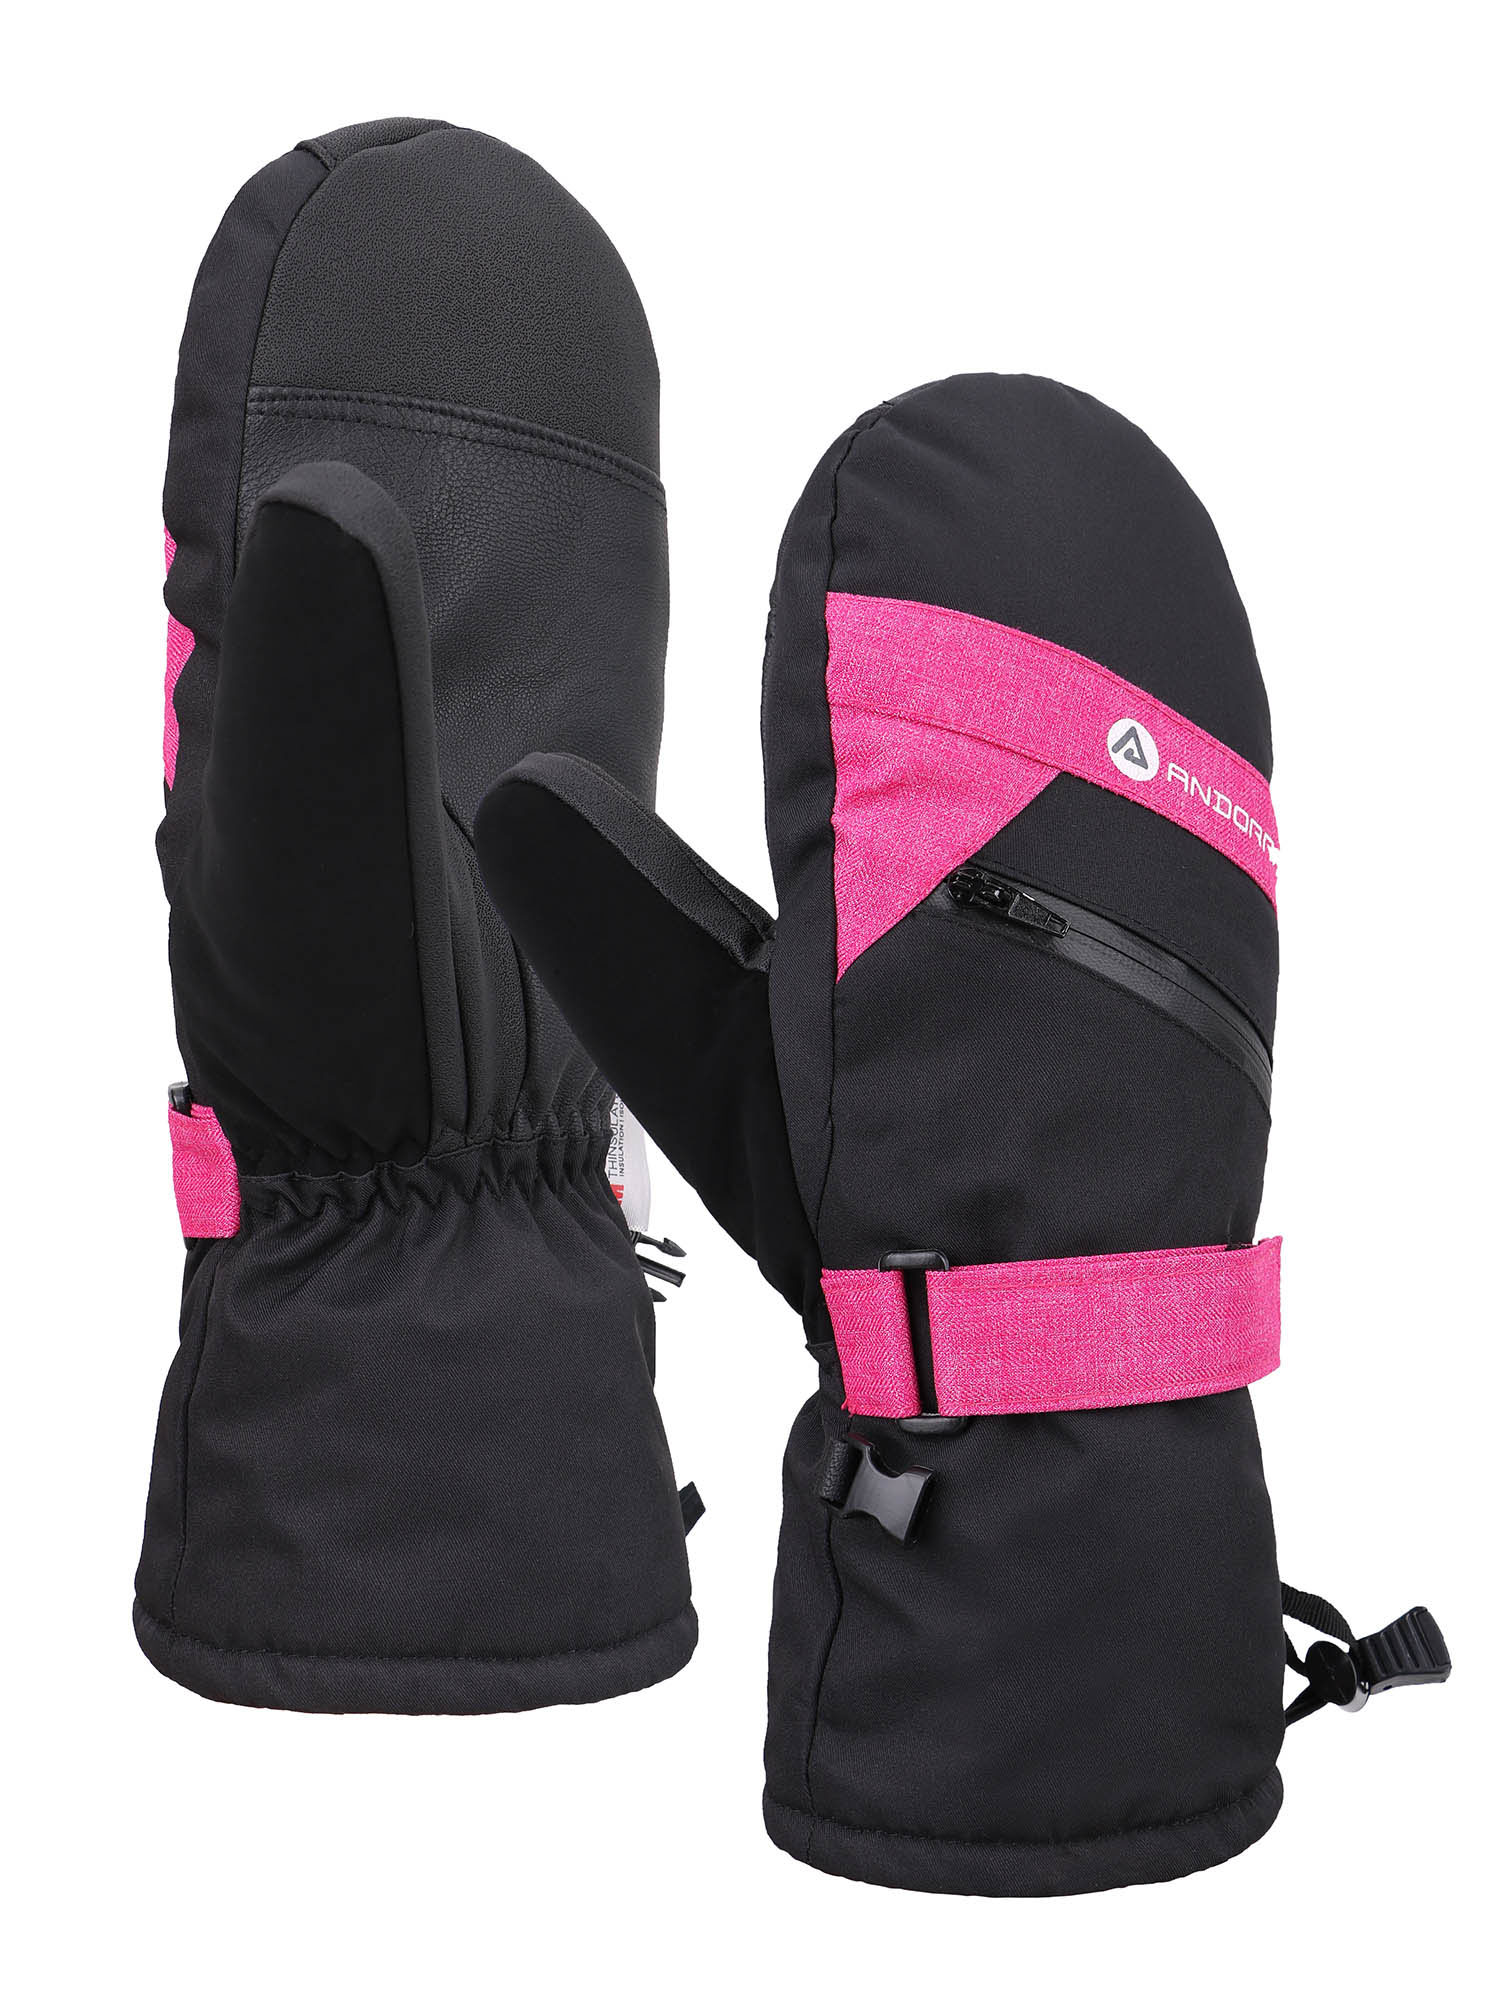 Women's C100 3M Thinsulate Touchscreen Ski Snowboarding Mittens, Pink/Black, M/L